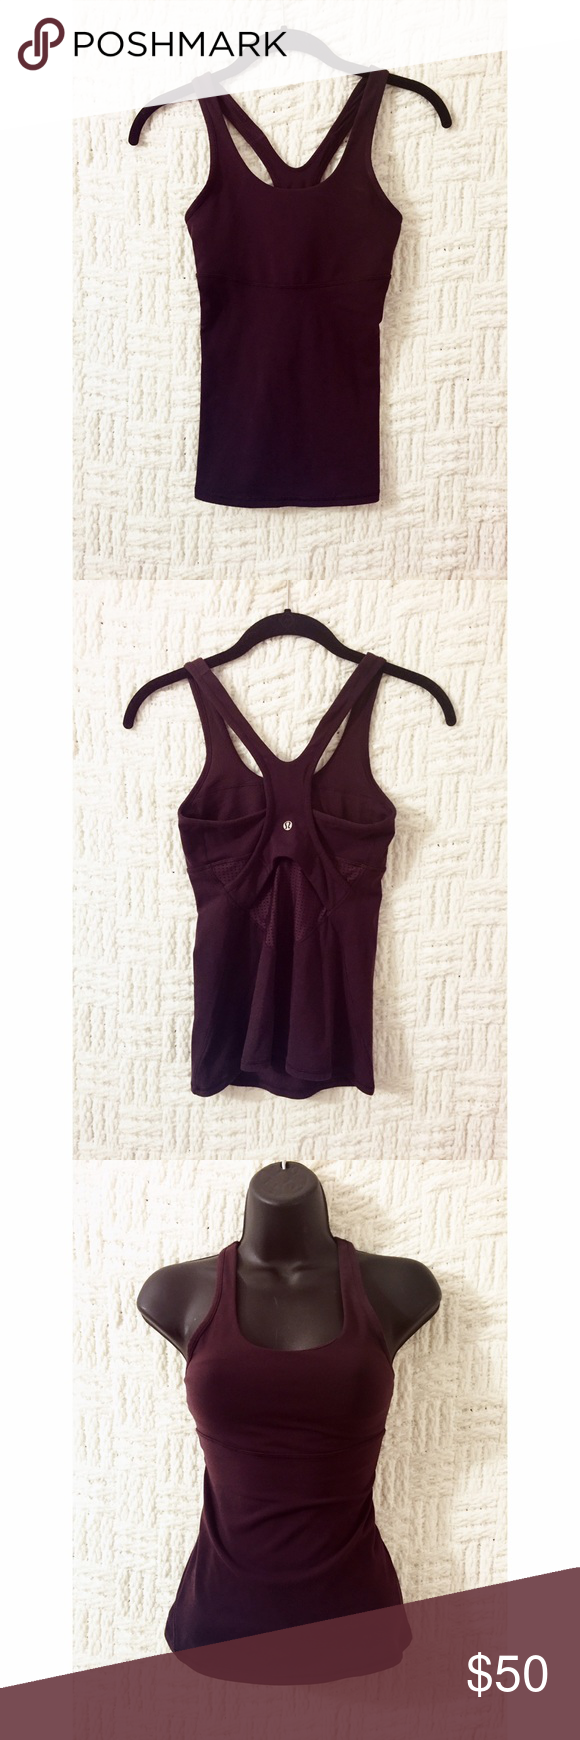 Lululemon Tank Dark burgundy / dark maroon Lululemon running / gym / yoga / workout tank with perforated back section.  Has inserts for padding; pads not included.  Pull tag removed; material is their signature Luon fabric.  Size 2.  No trades / modeling.  {box16} lululemon athletica Tops Tank Tops